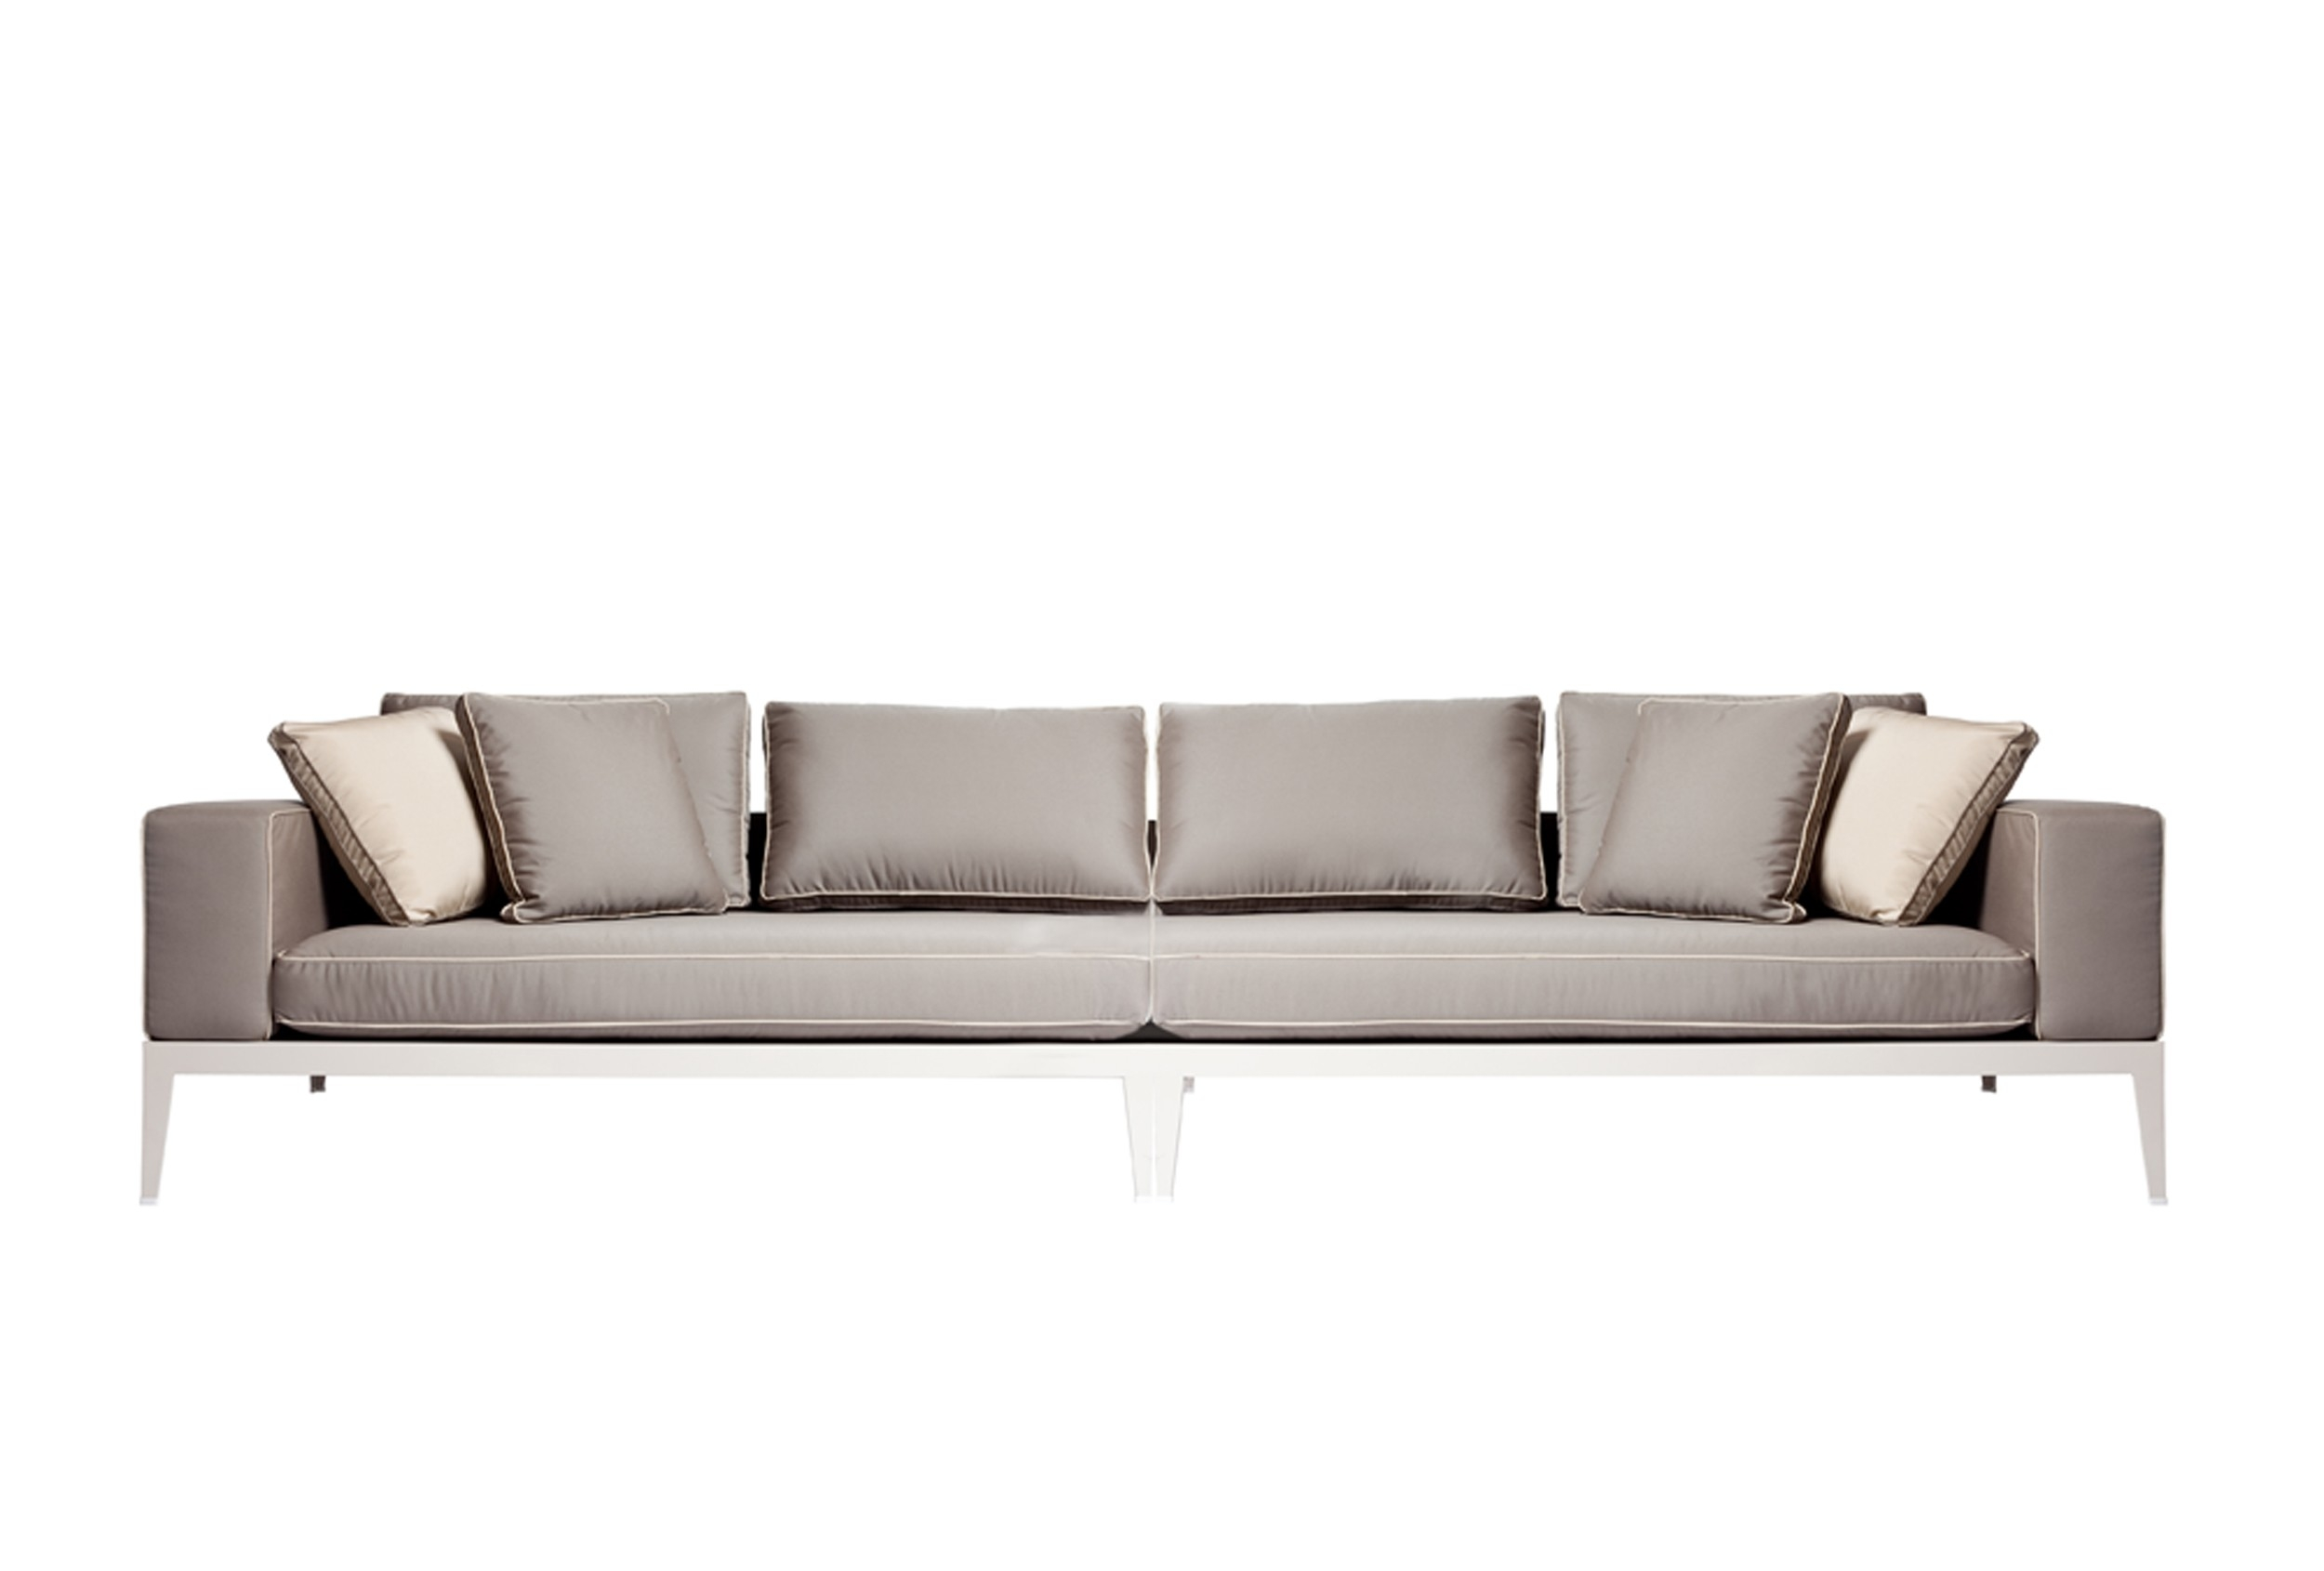 Decoration Seater Sofa With Court Seater Curved Sofa Arizona In 4 Seat Sofas (Image 7 of 15)